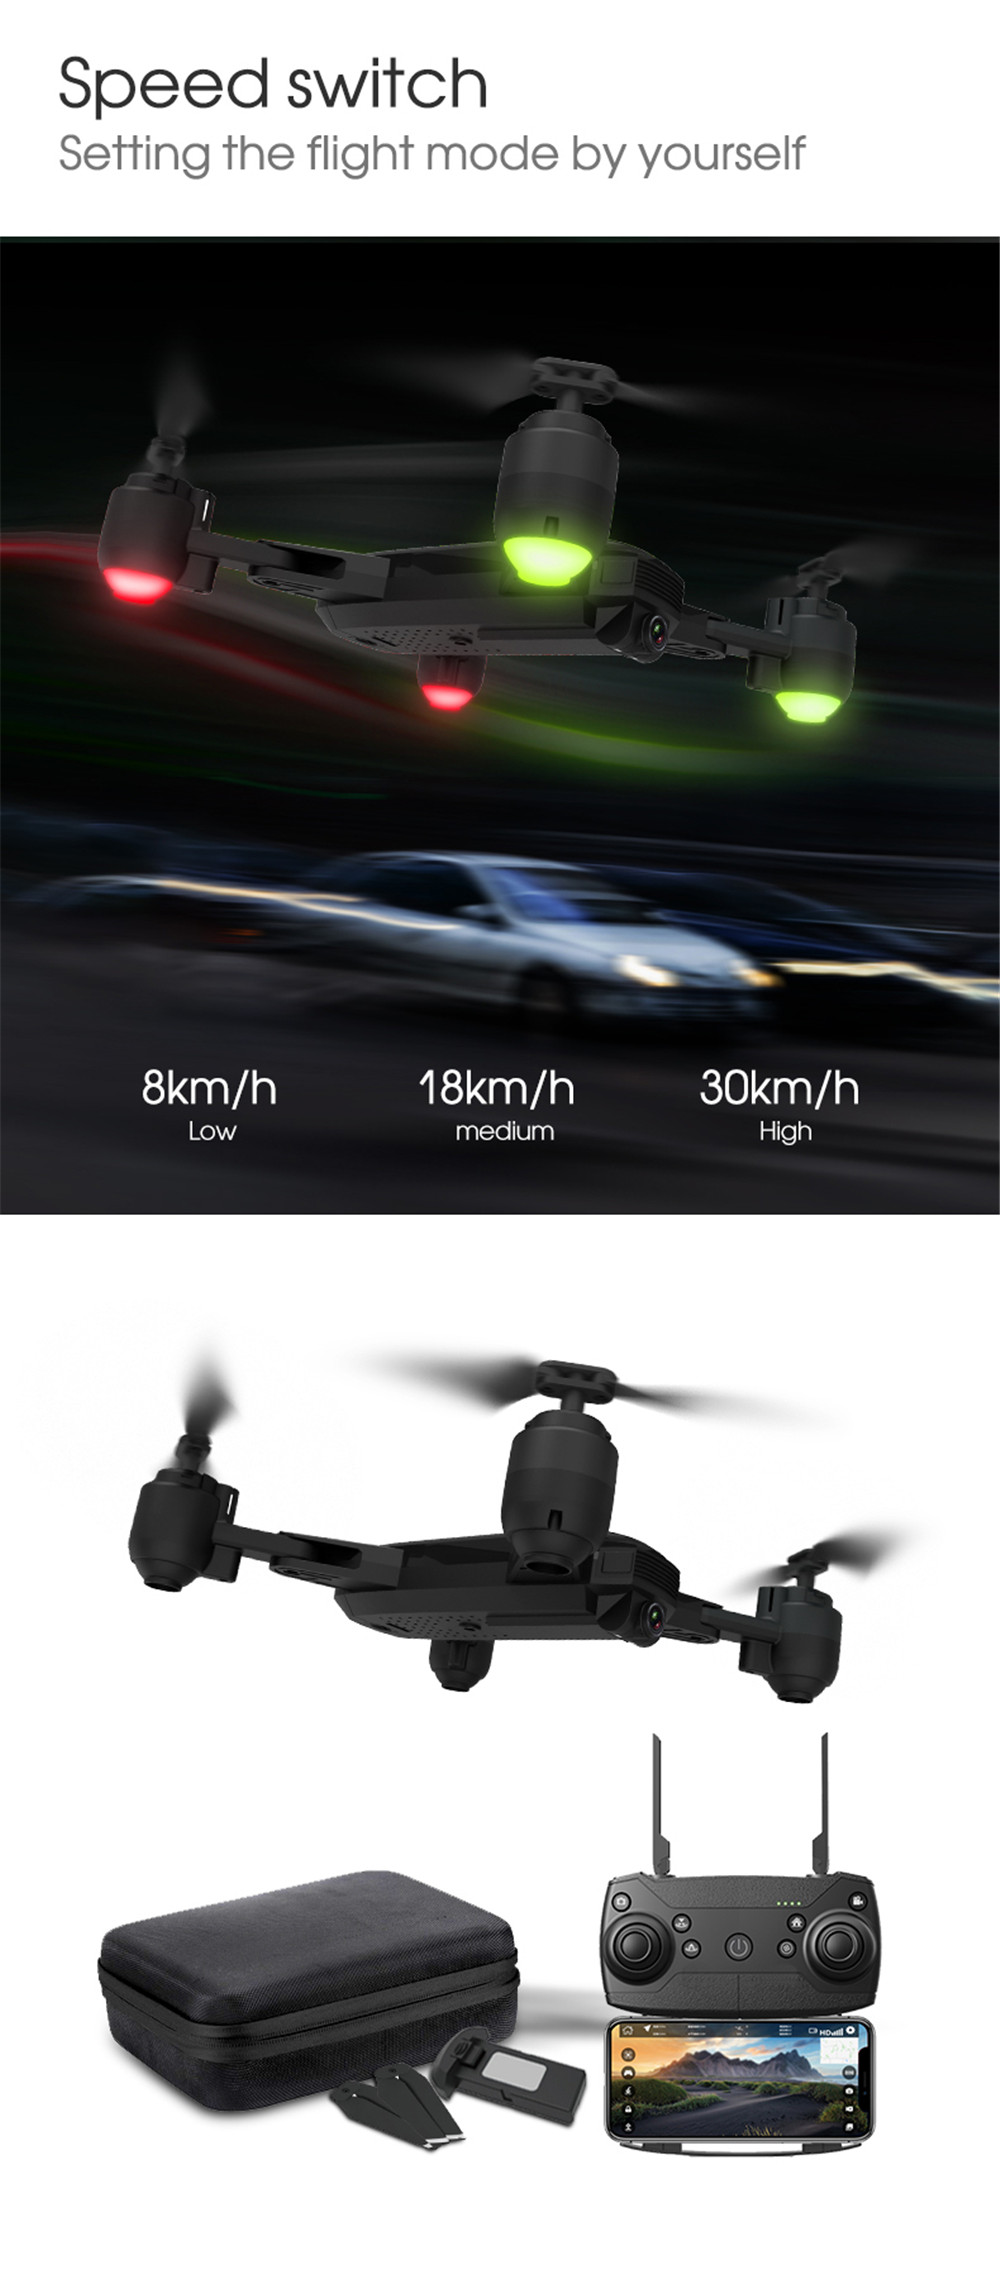 New Drone GPS 1080P HD Camera 5Ghz Follow me WIFI FPV RC Quadcopter Foldable Selfie Live Video Altitude Hold Auto Return RC Dron 11